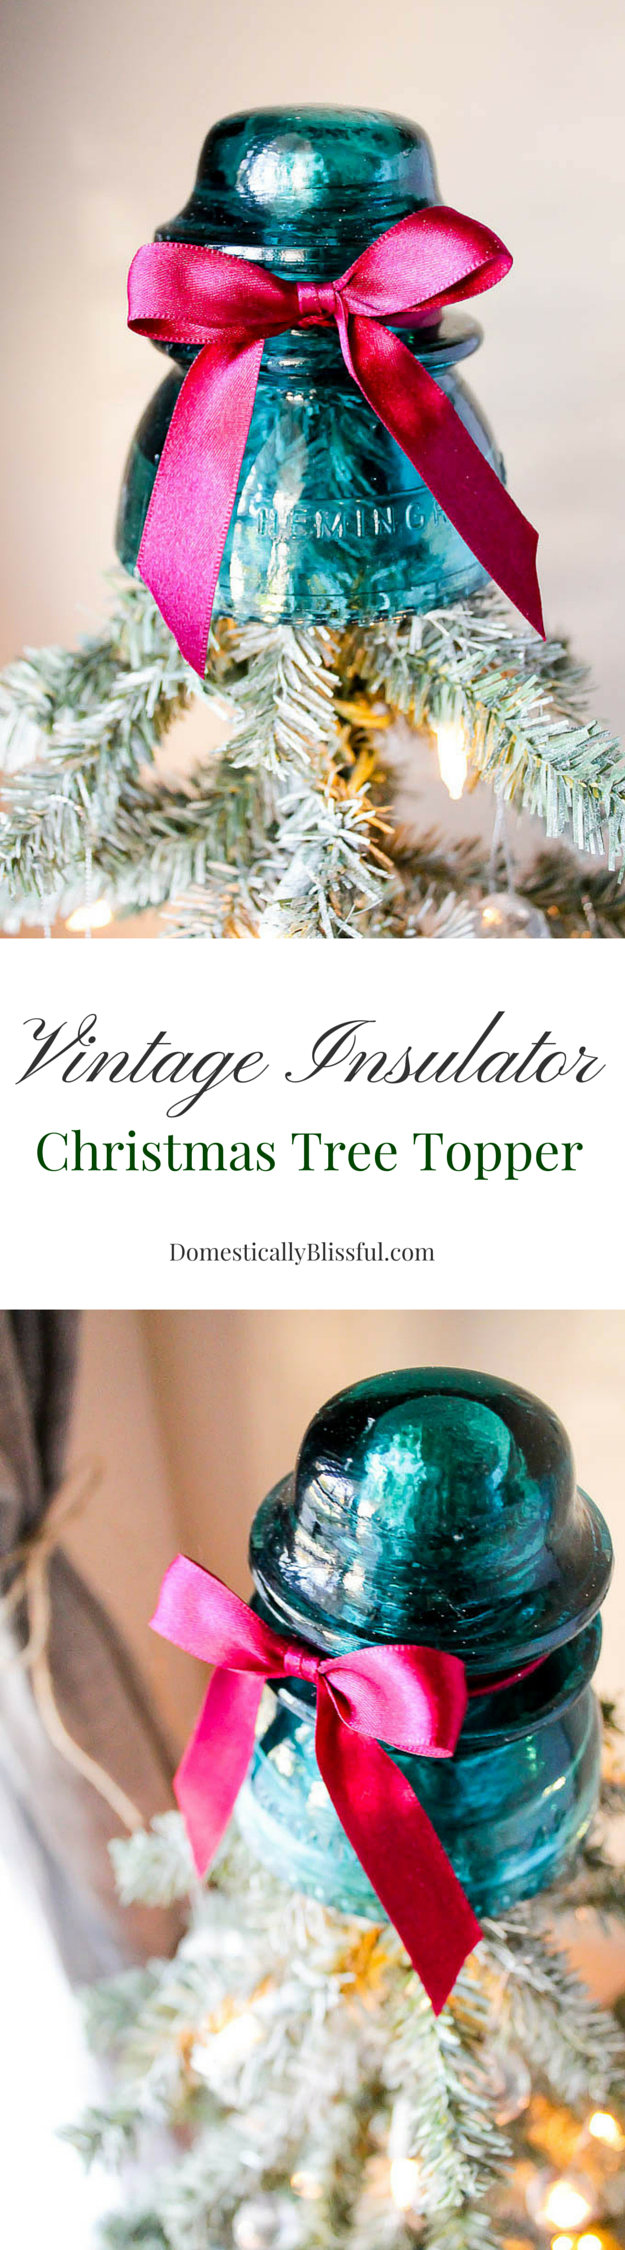 Create a Vintage Insulator Christmas Tree Topper in just a few minutes to enjoy all season long